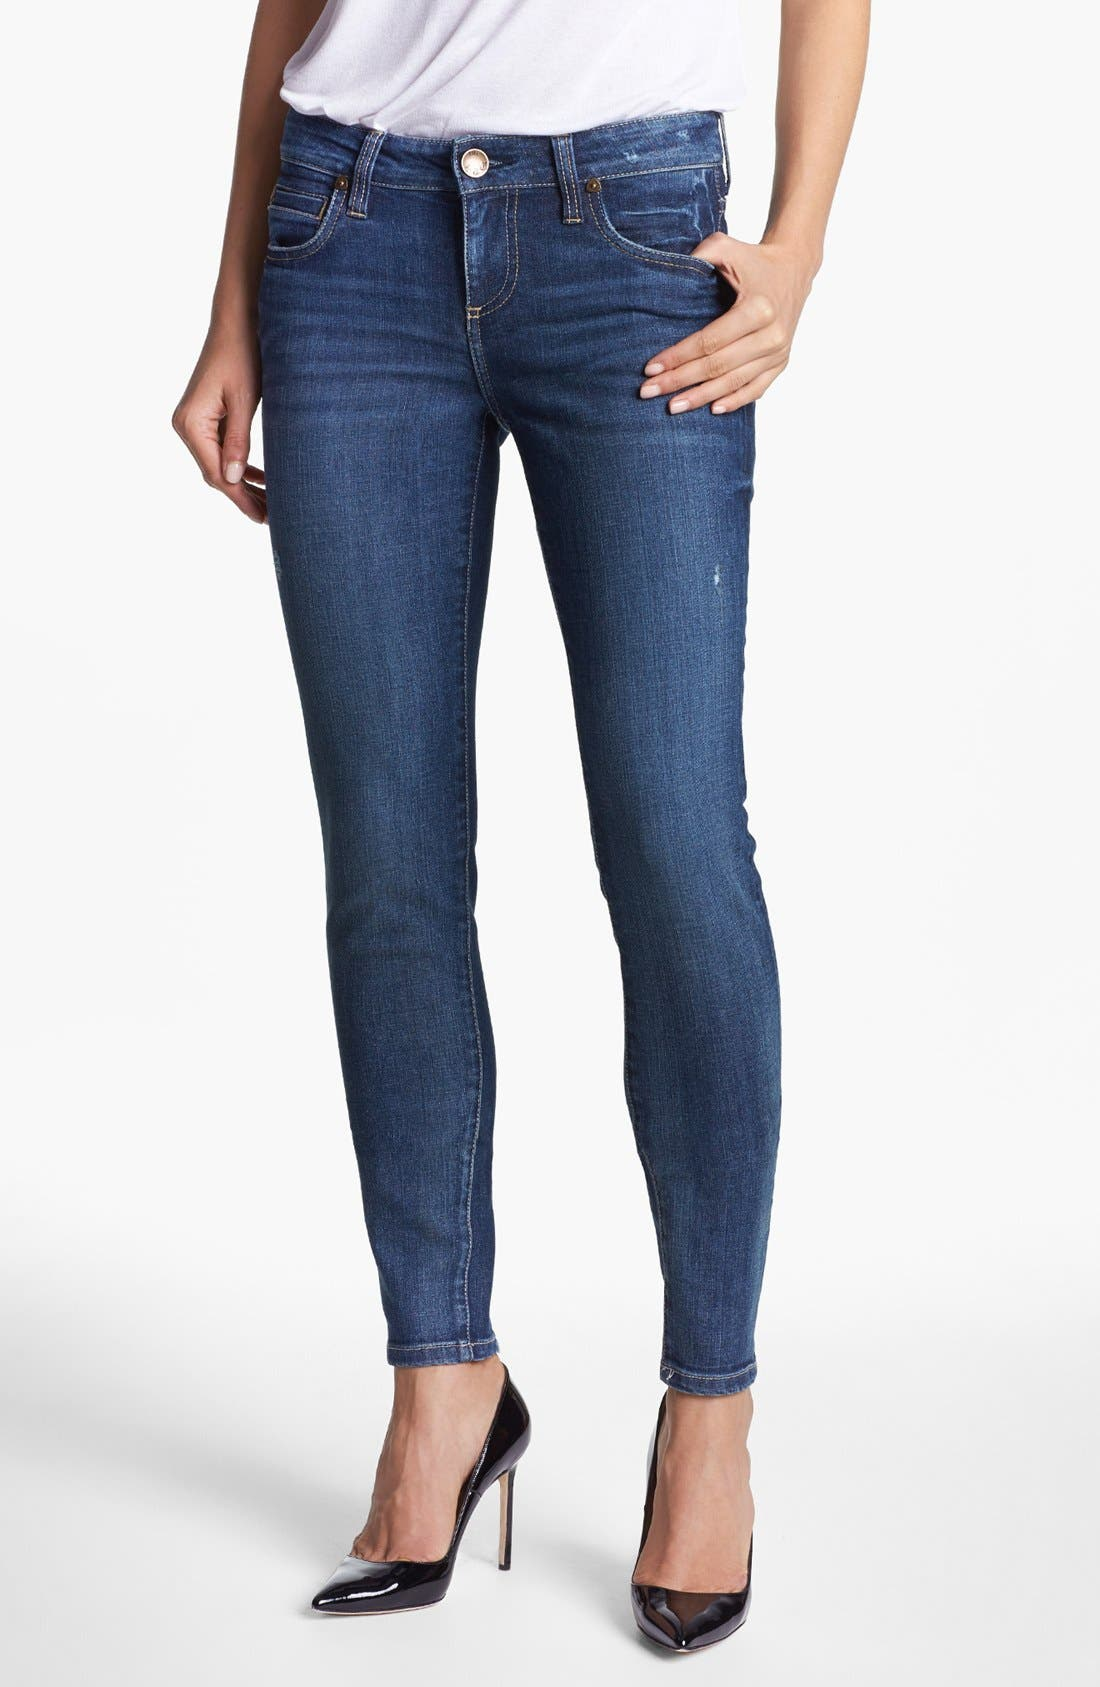 KUT FROM THE KLOTH 'Mia' Skinny Jeans, Main, color, 433